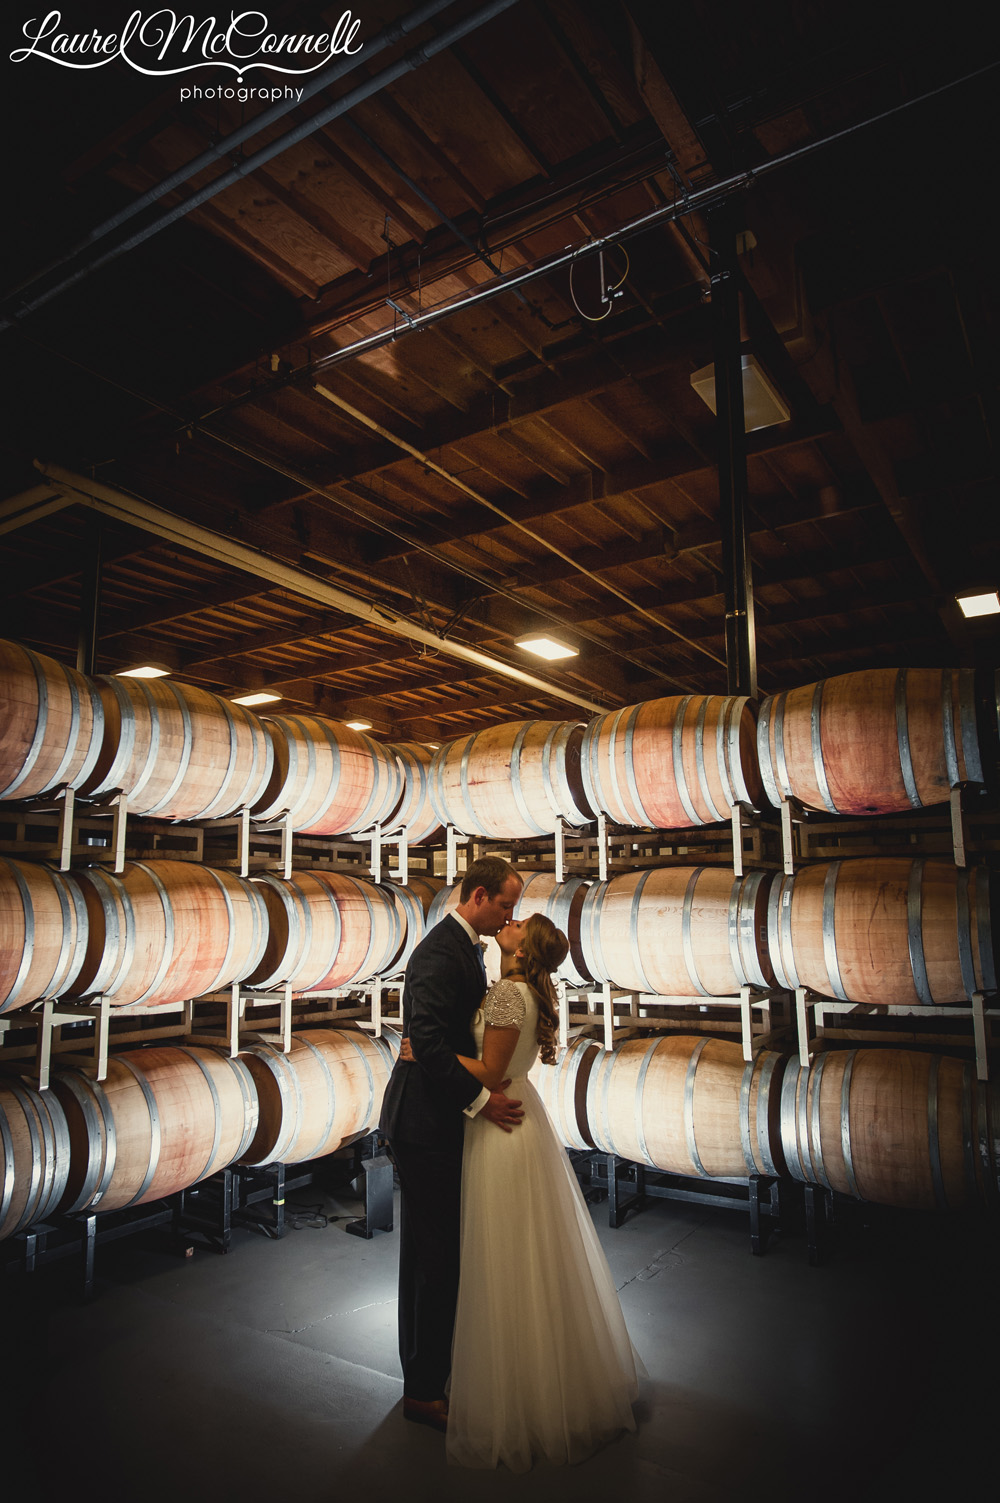 Bride and groom portrait amongst wine barrel's at Columbia Winery near Seattle, Washington photographed by Laurel McConnell Photography.